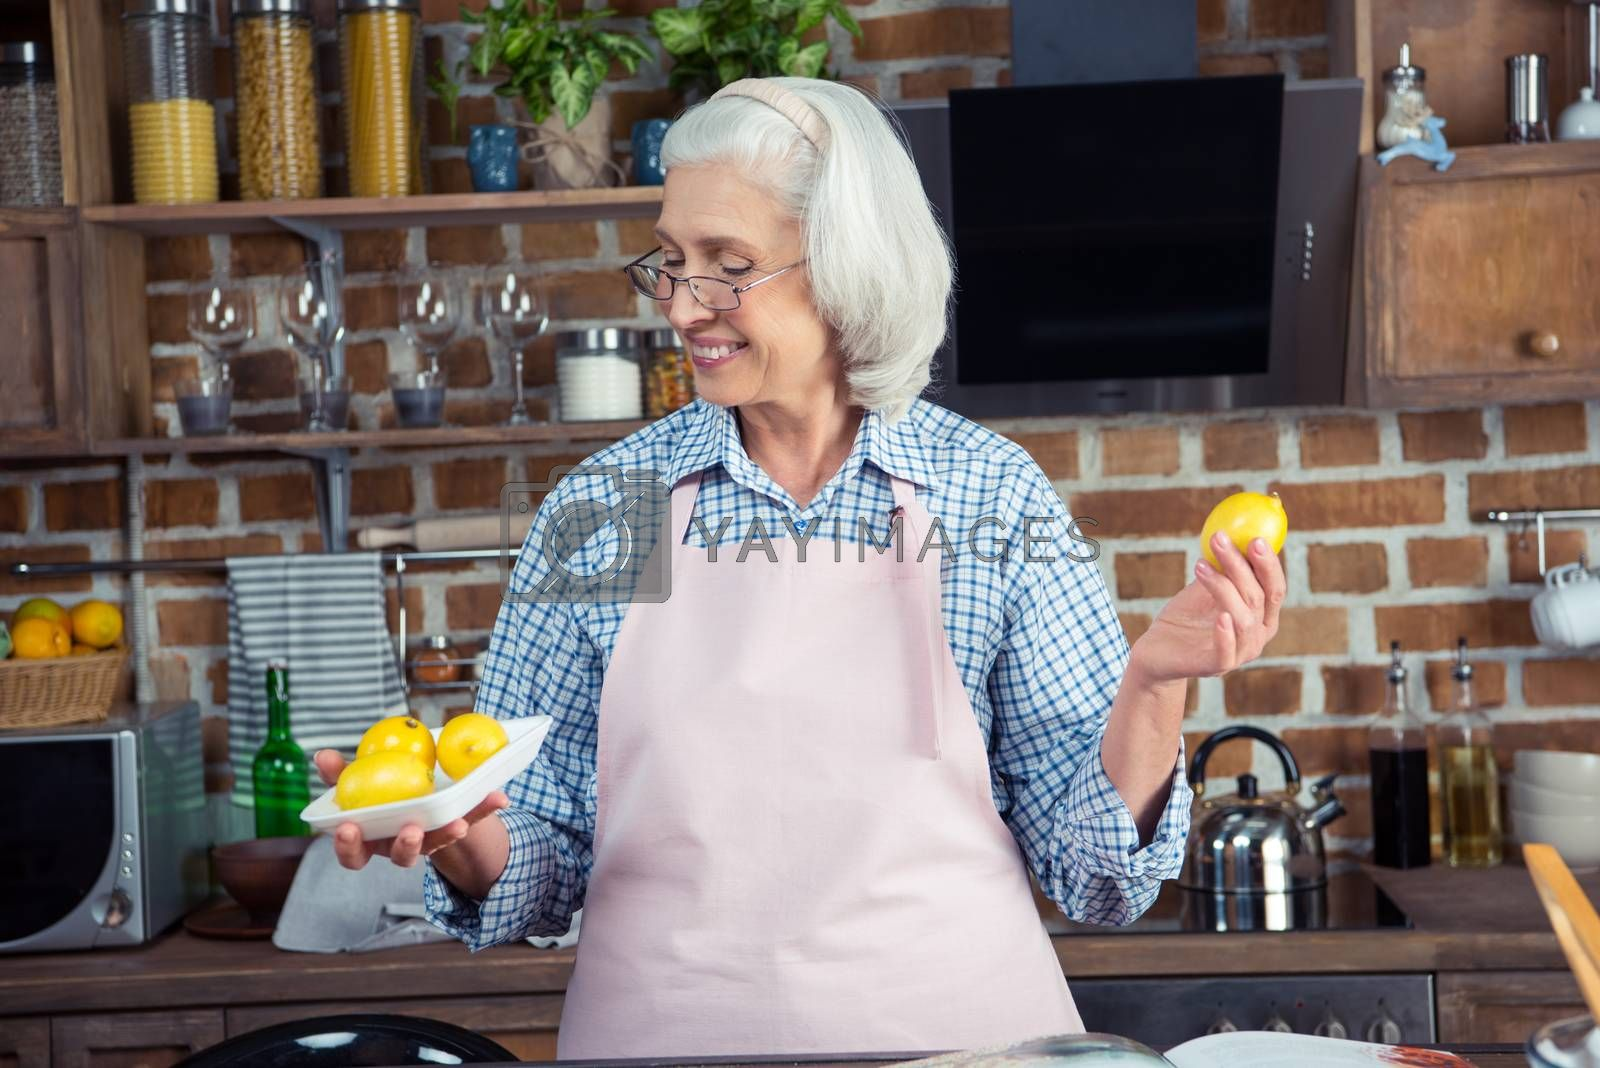 Smiling senior woman in eyeglasses and apron looking at lemons in kitchen